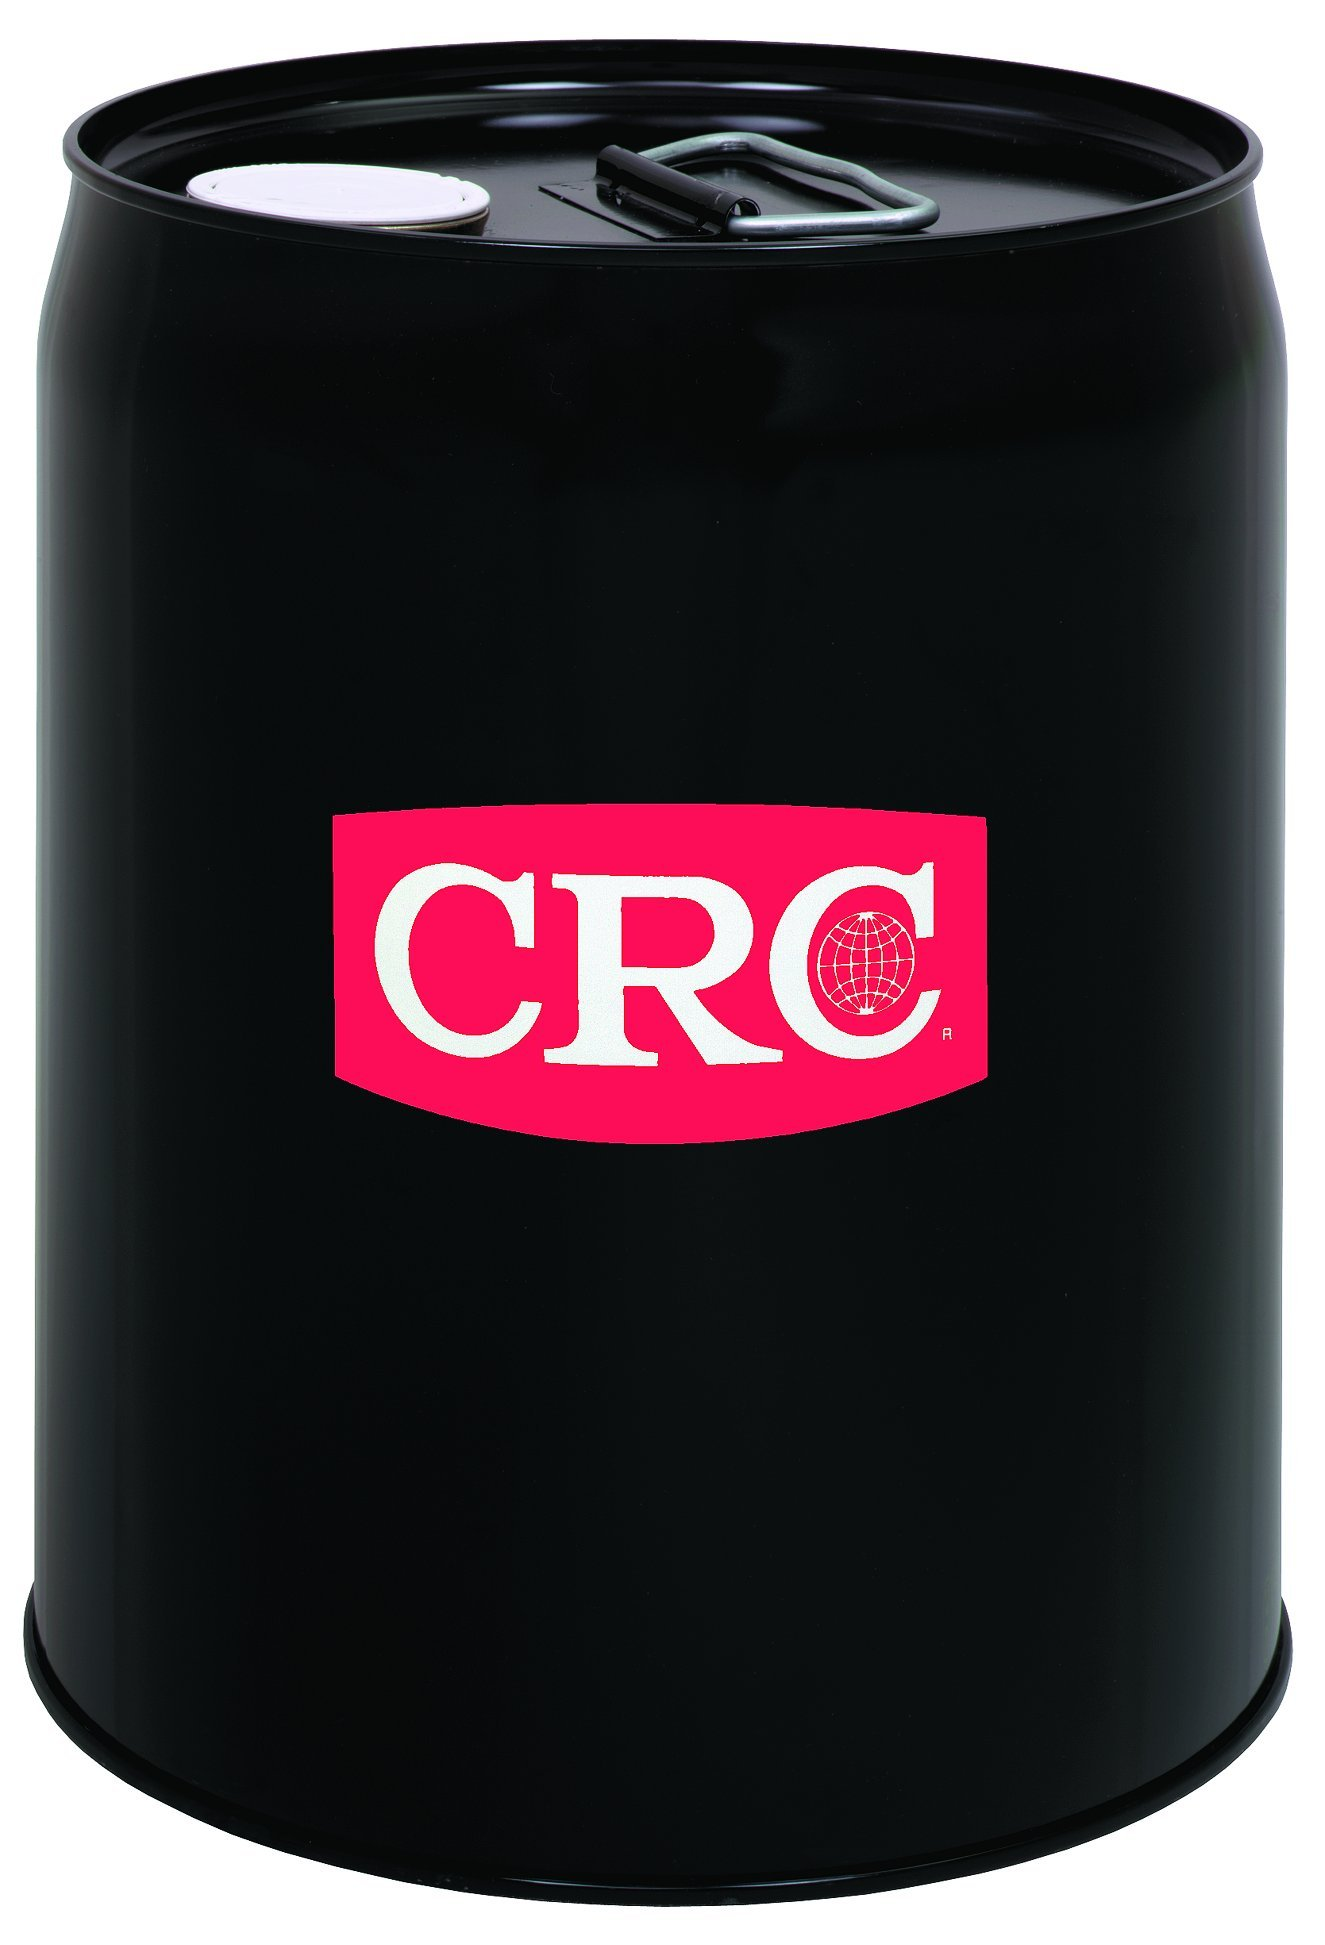 CRC TrueTap Aqua Water Soluble Cutting Fluid, 5 Gallon Pail, Blue by CRC